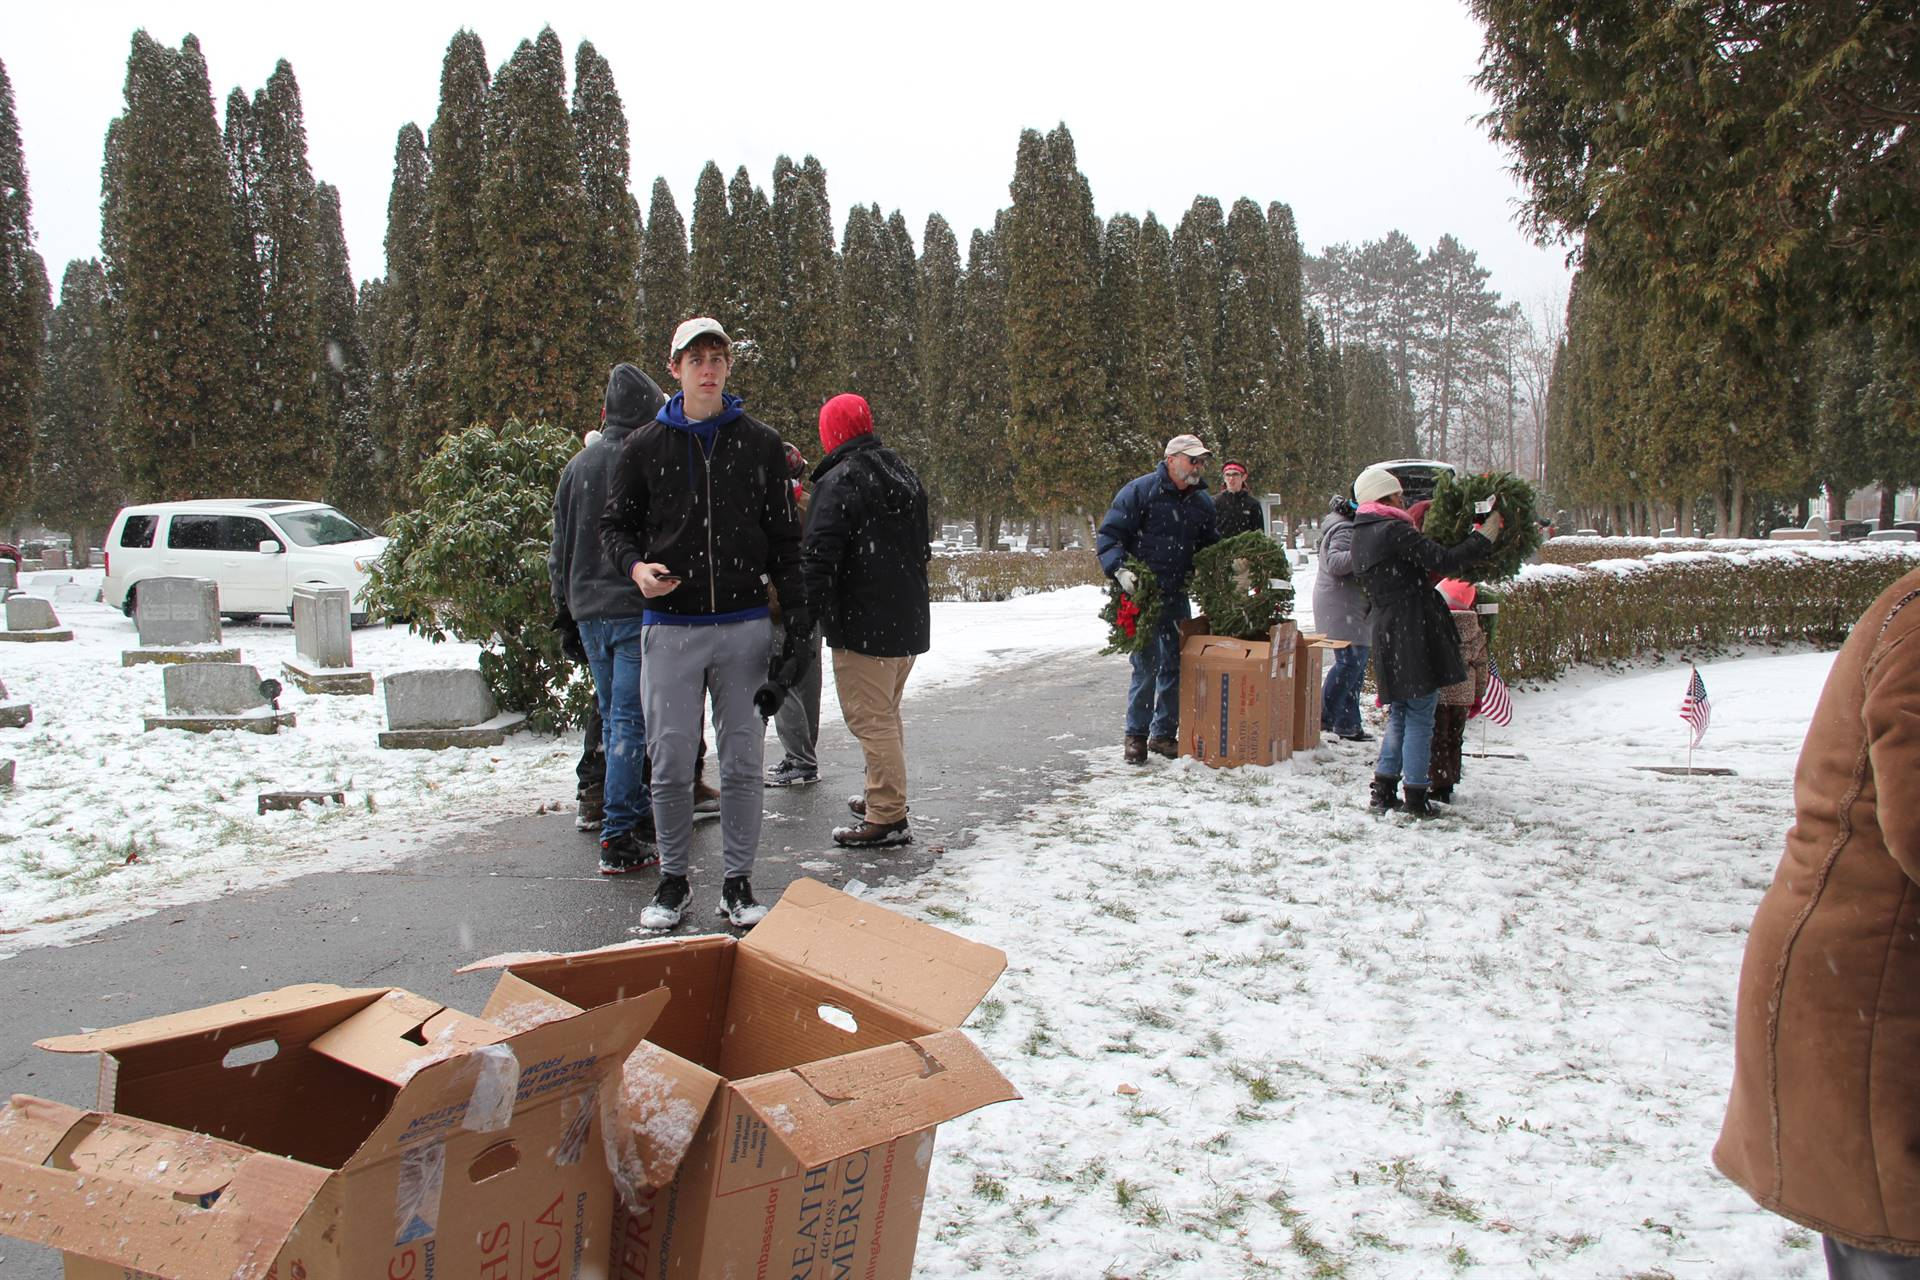 wide shot of cemetary with people standing in background